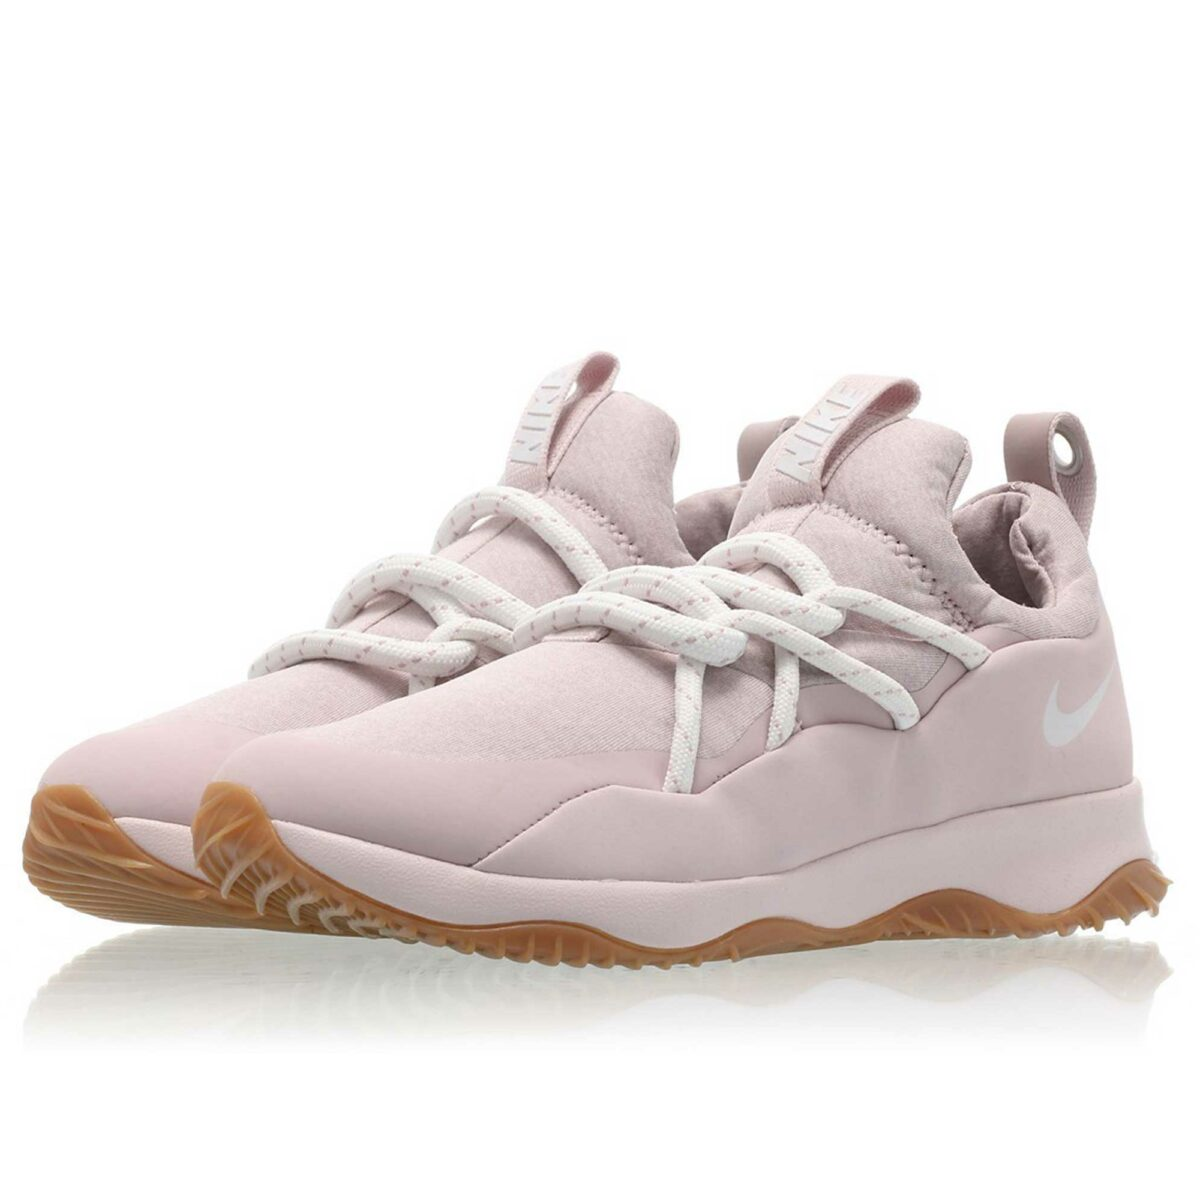 nike city loop pink aa1097_601 купить